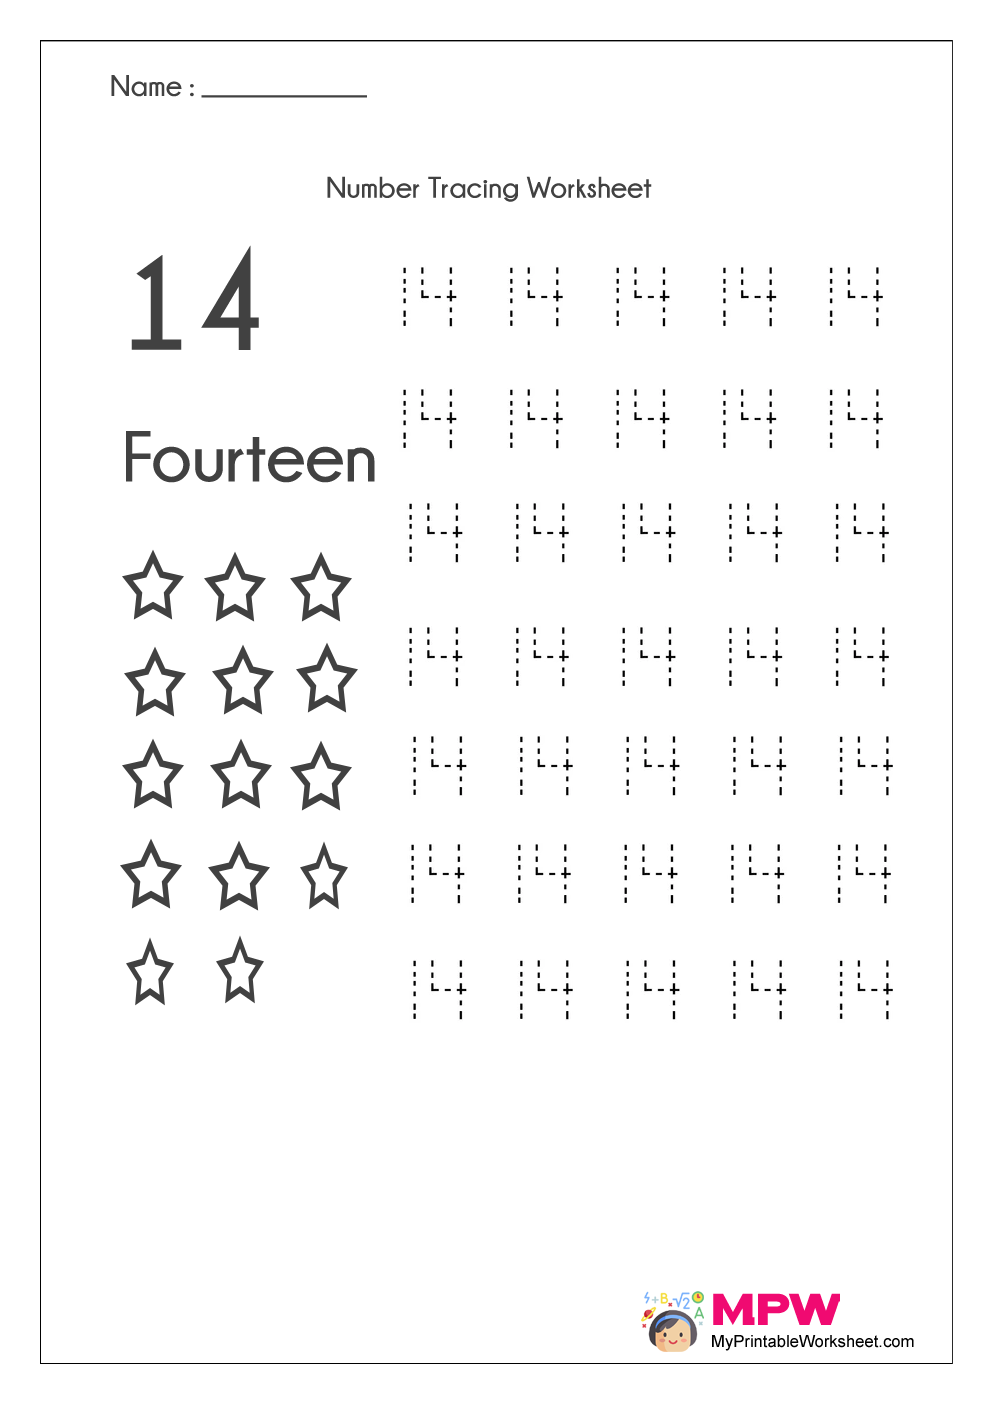 Number Tracing Worksheets 1 20 Dotted Line Number Tracing